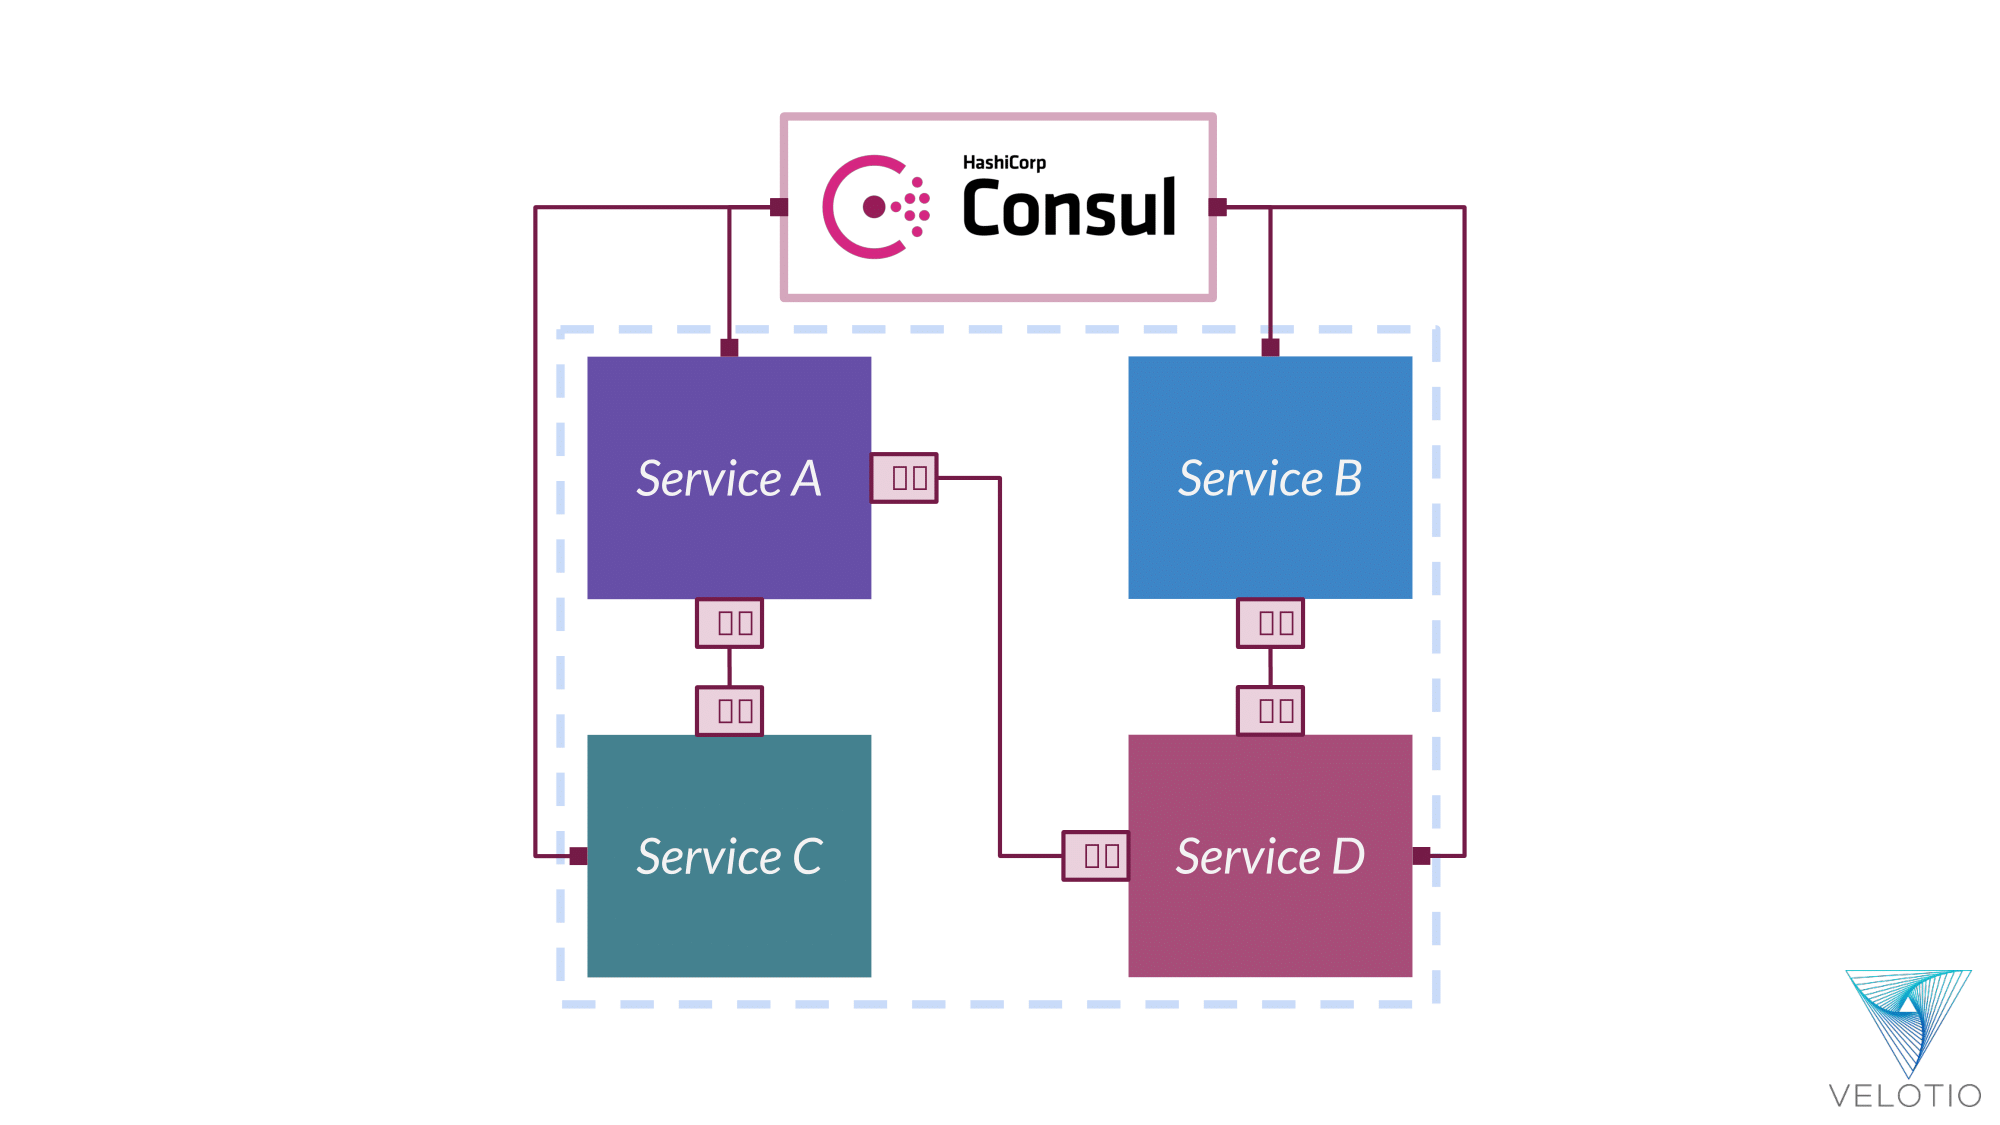 Service-level policy enforcement to define traffic pattern and segmentation using Consul